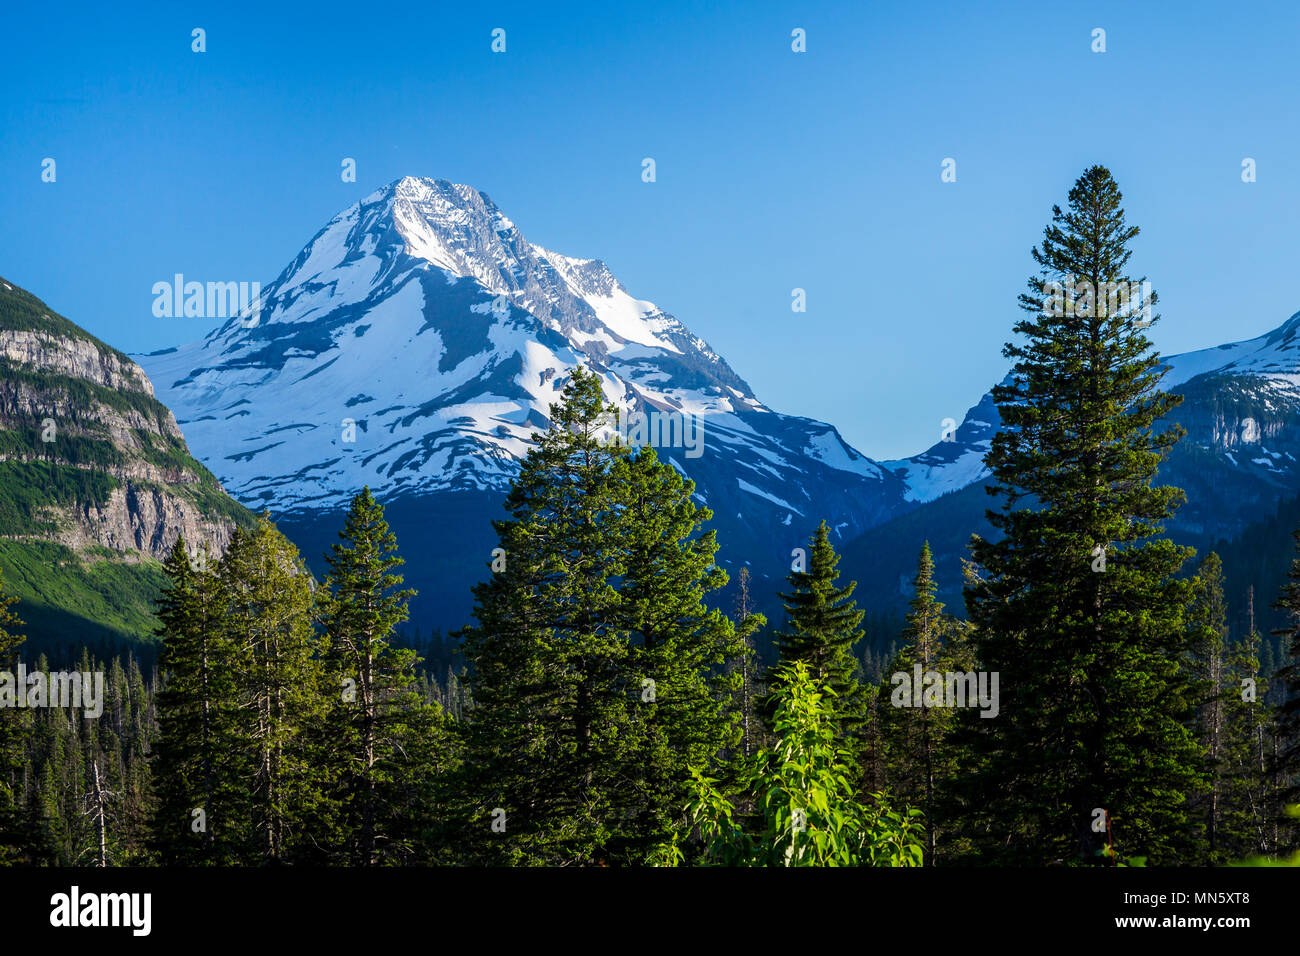 Alpine scenery with snow covered Mount Jackson near St. Mary Lake in Glacier National Park, Montana, USA. - Stock Image